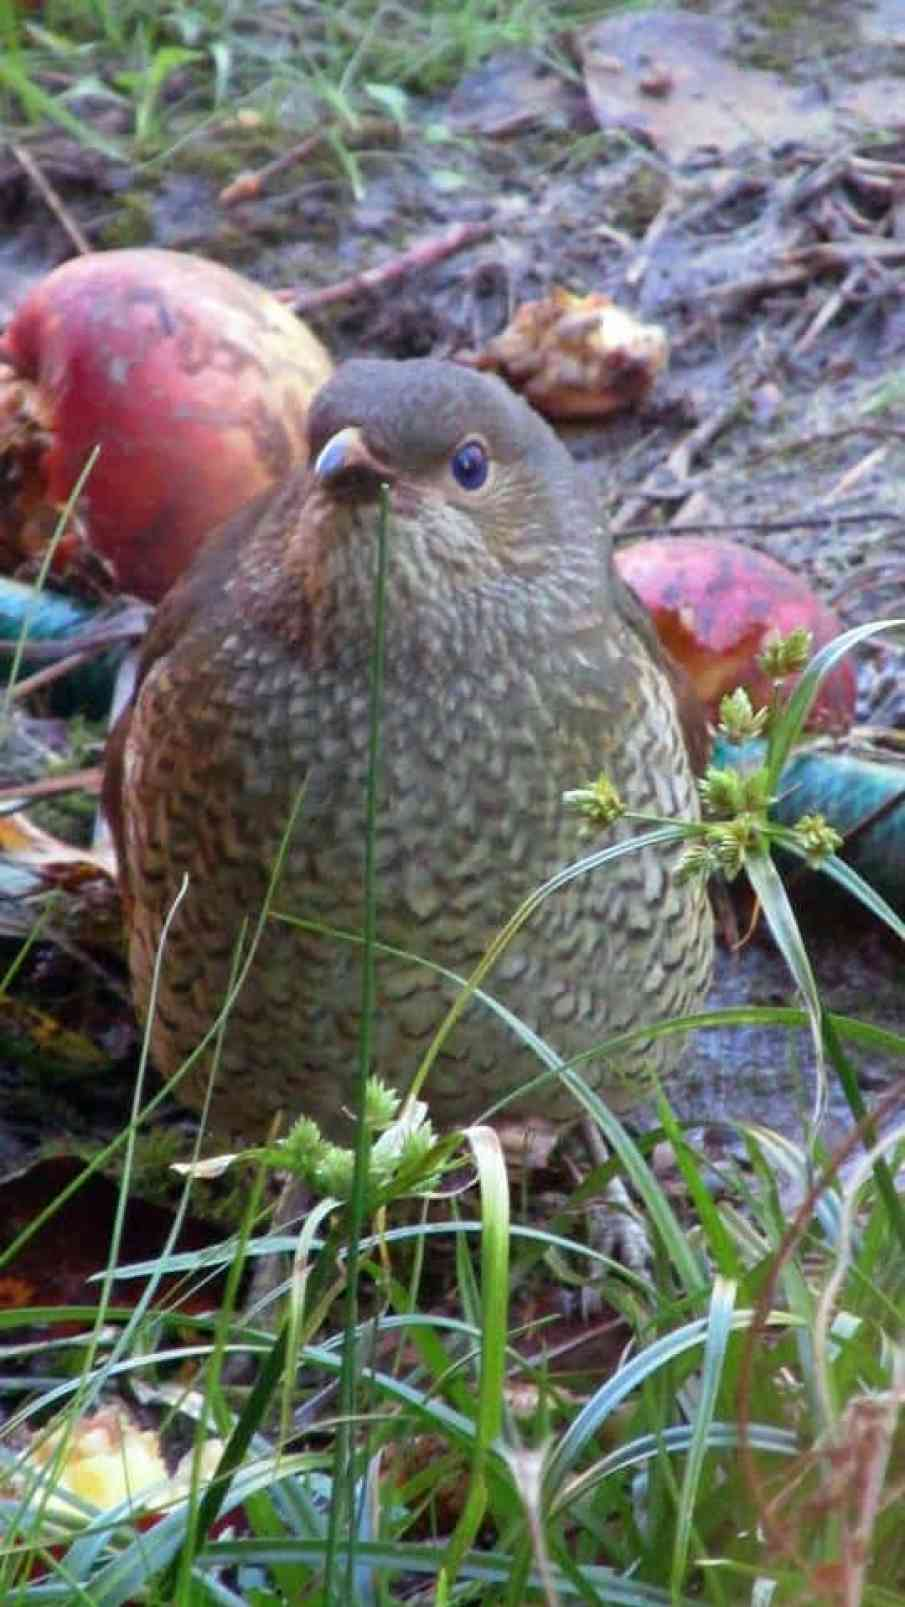 Young Satin Bower Bird - note the bright blue eyes.